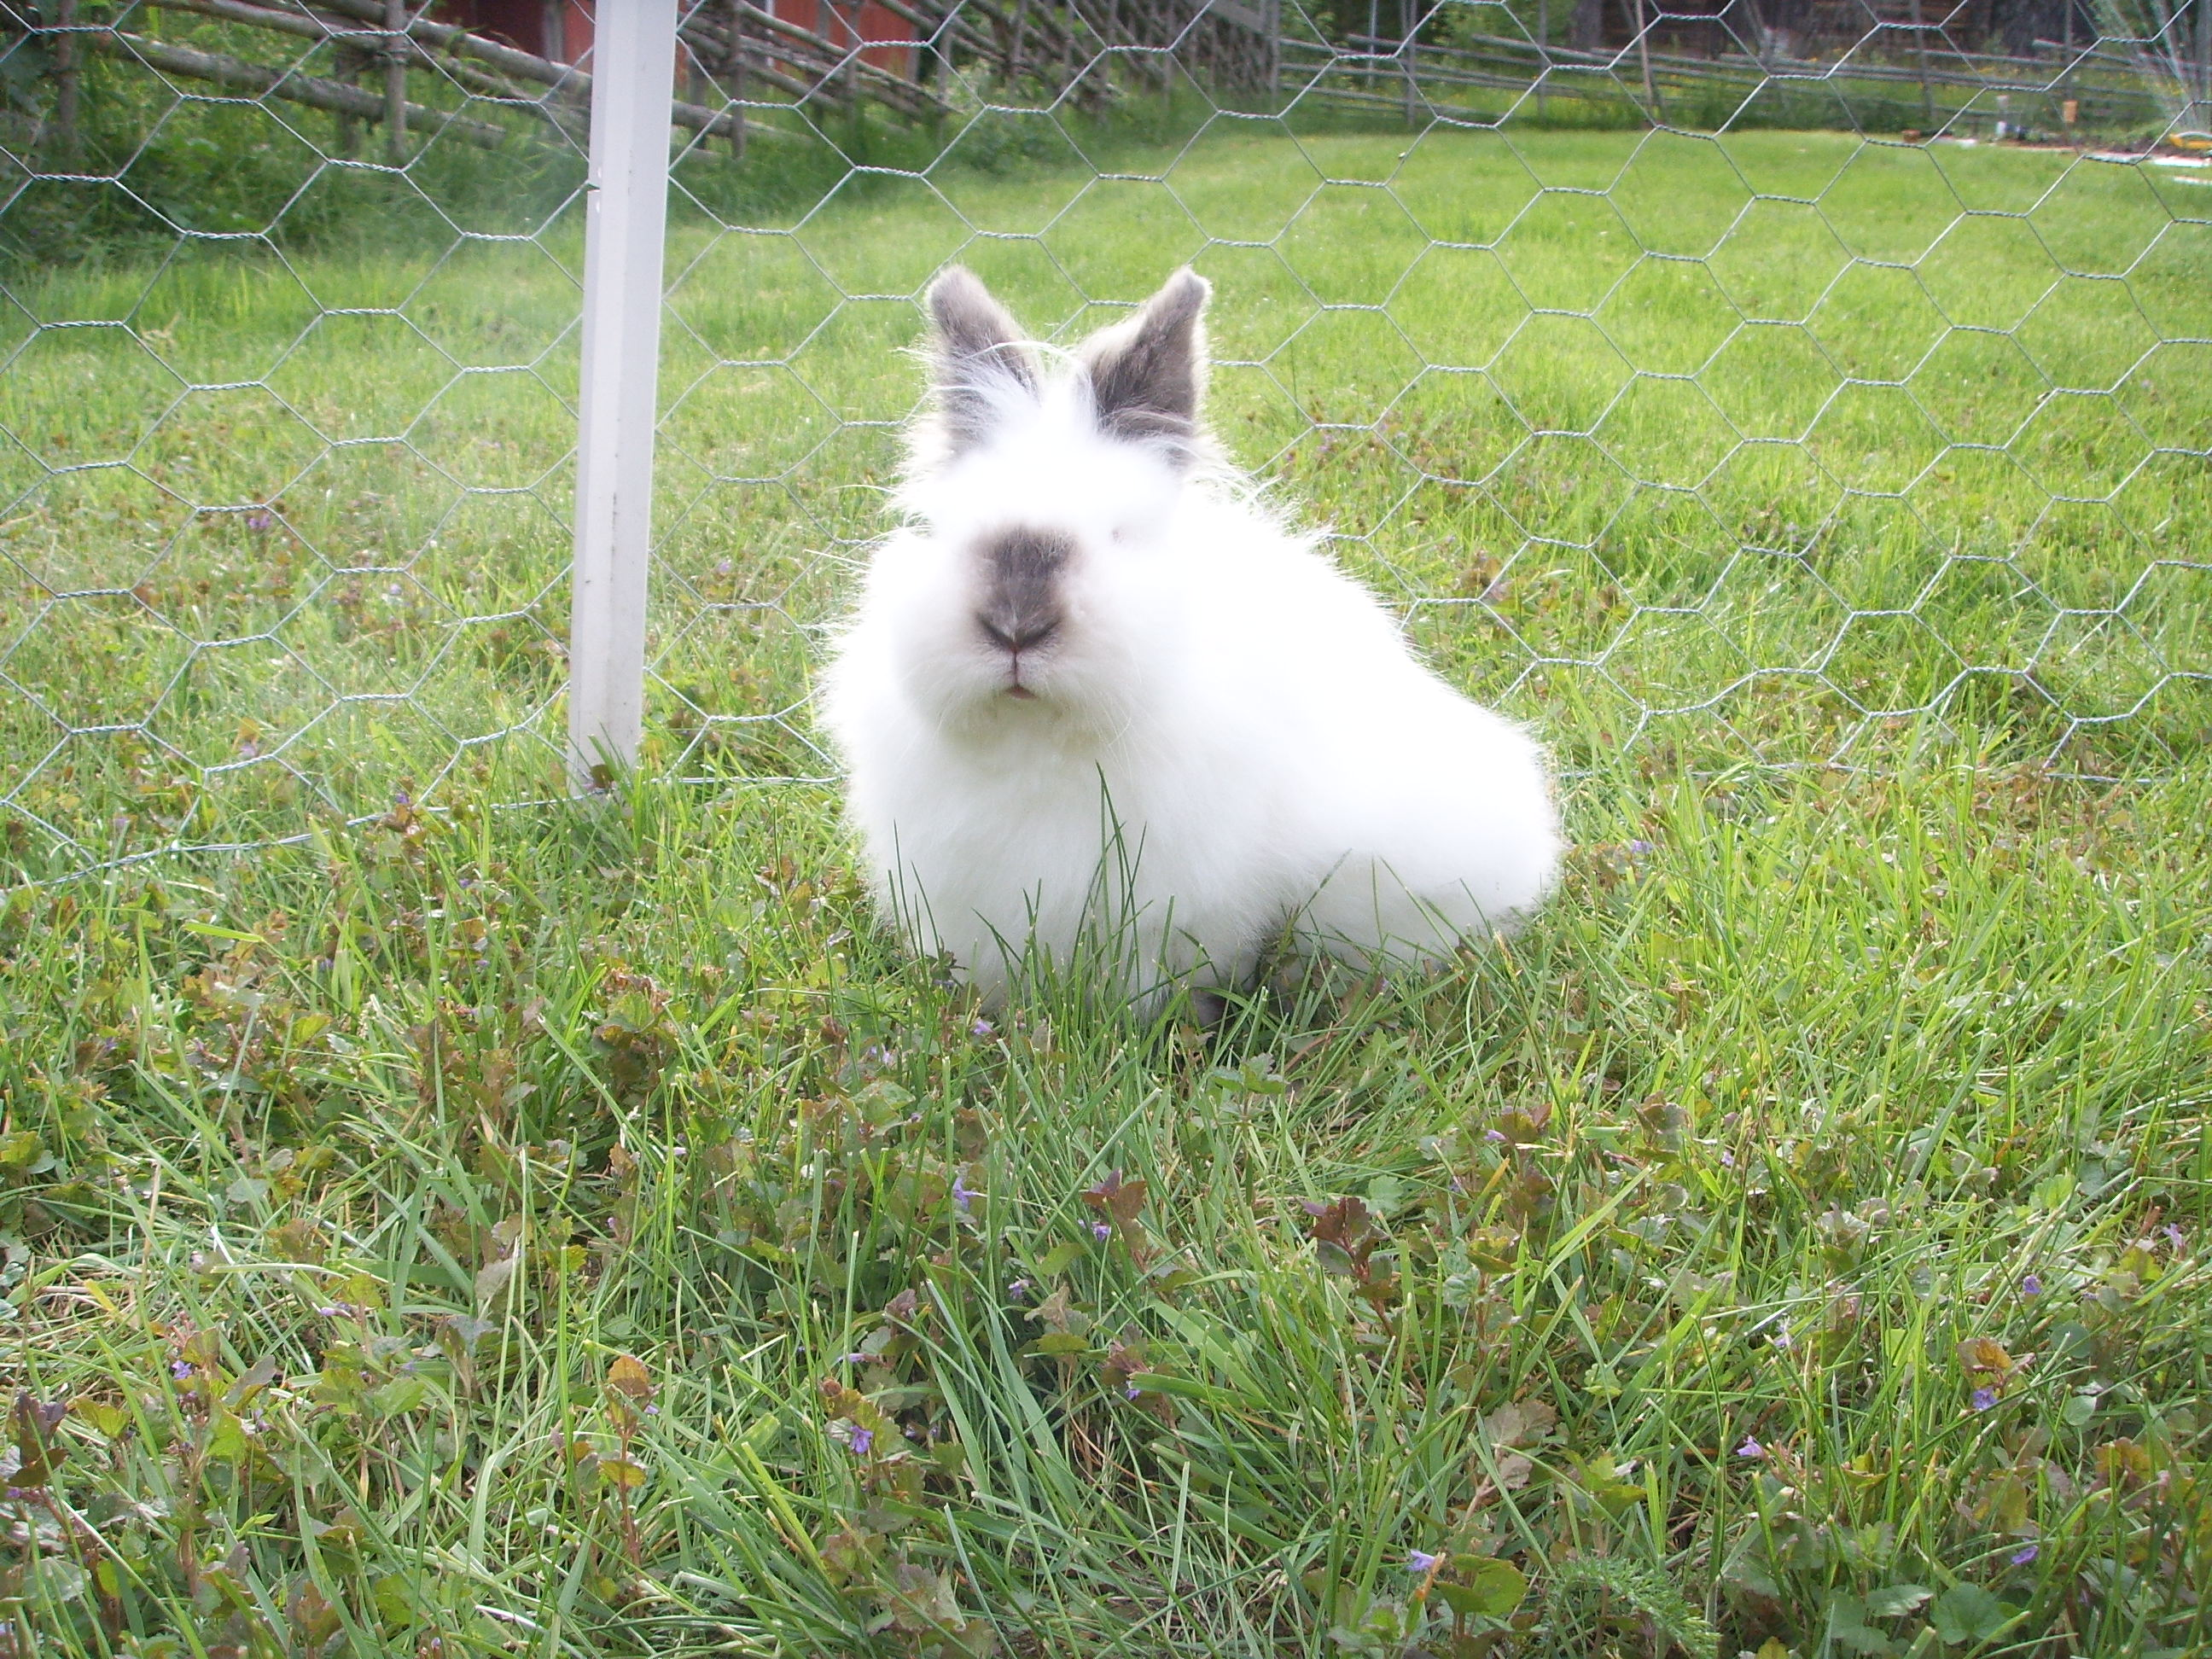 Brown and white lionhead rabbit - photo#3